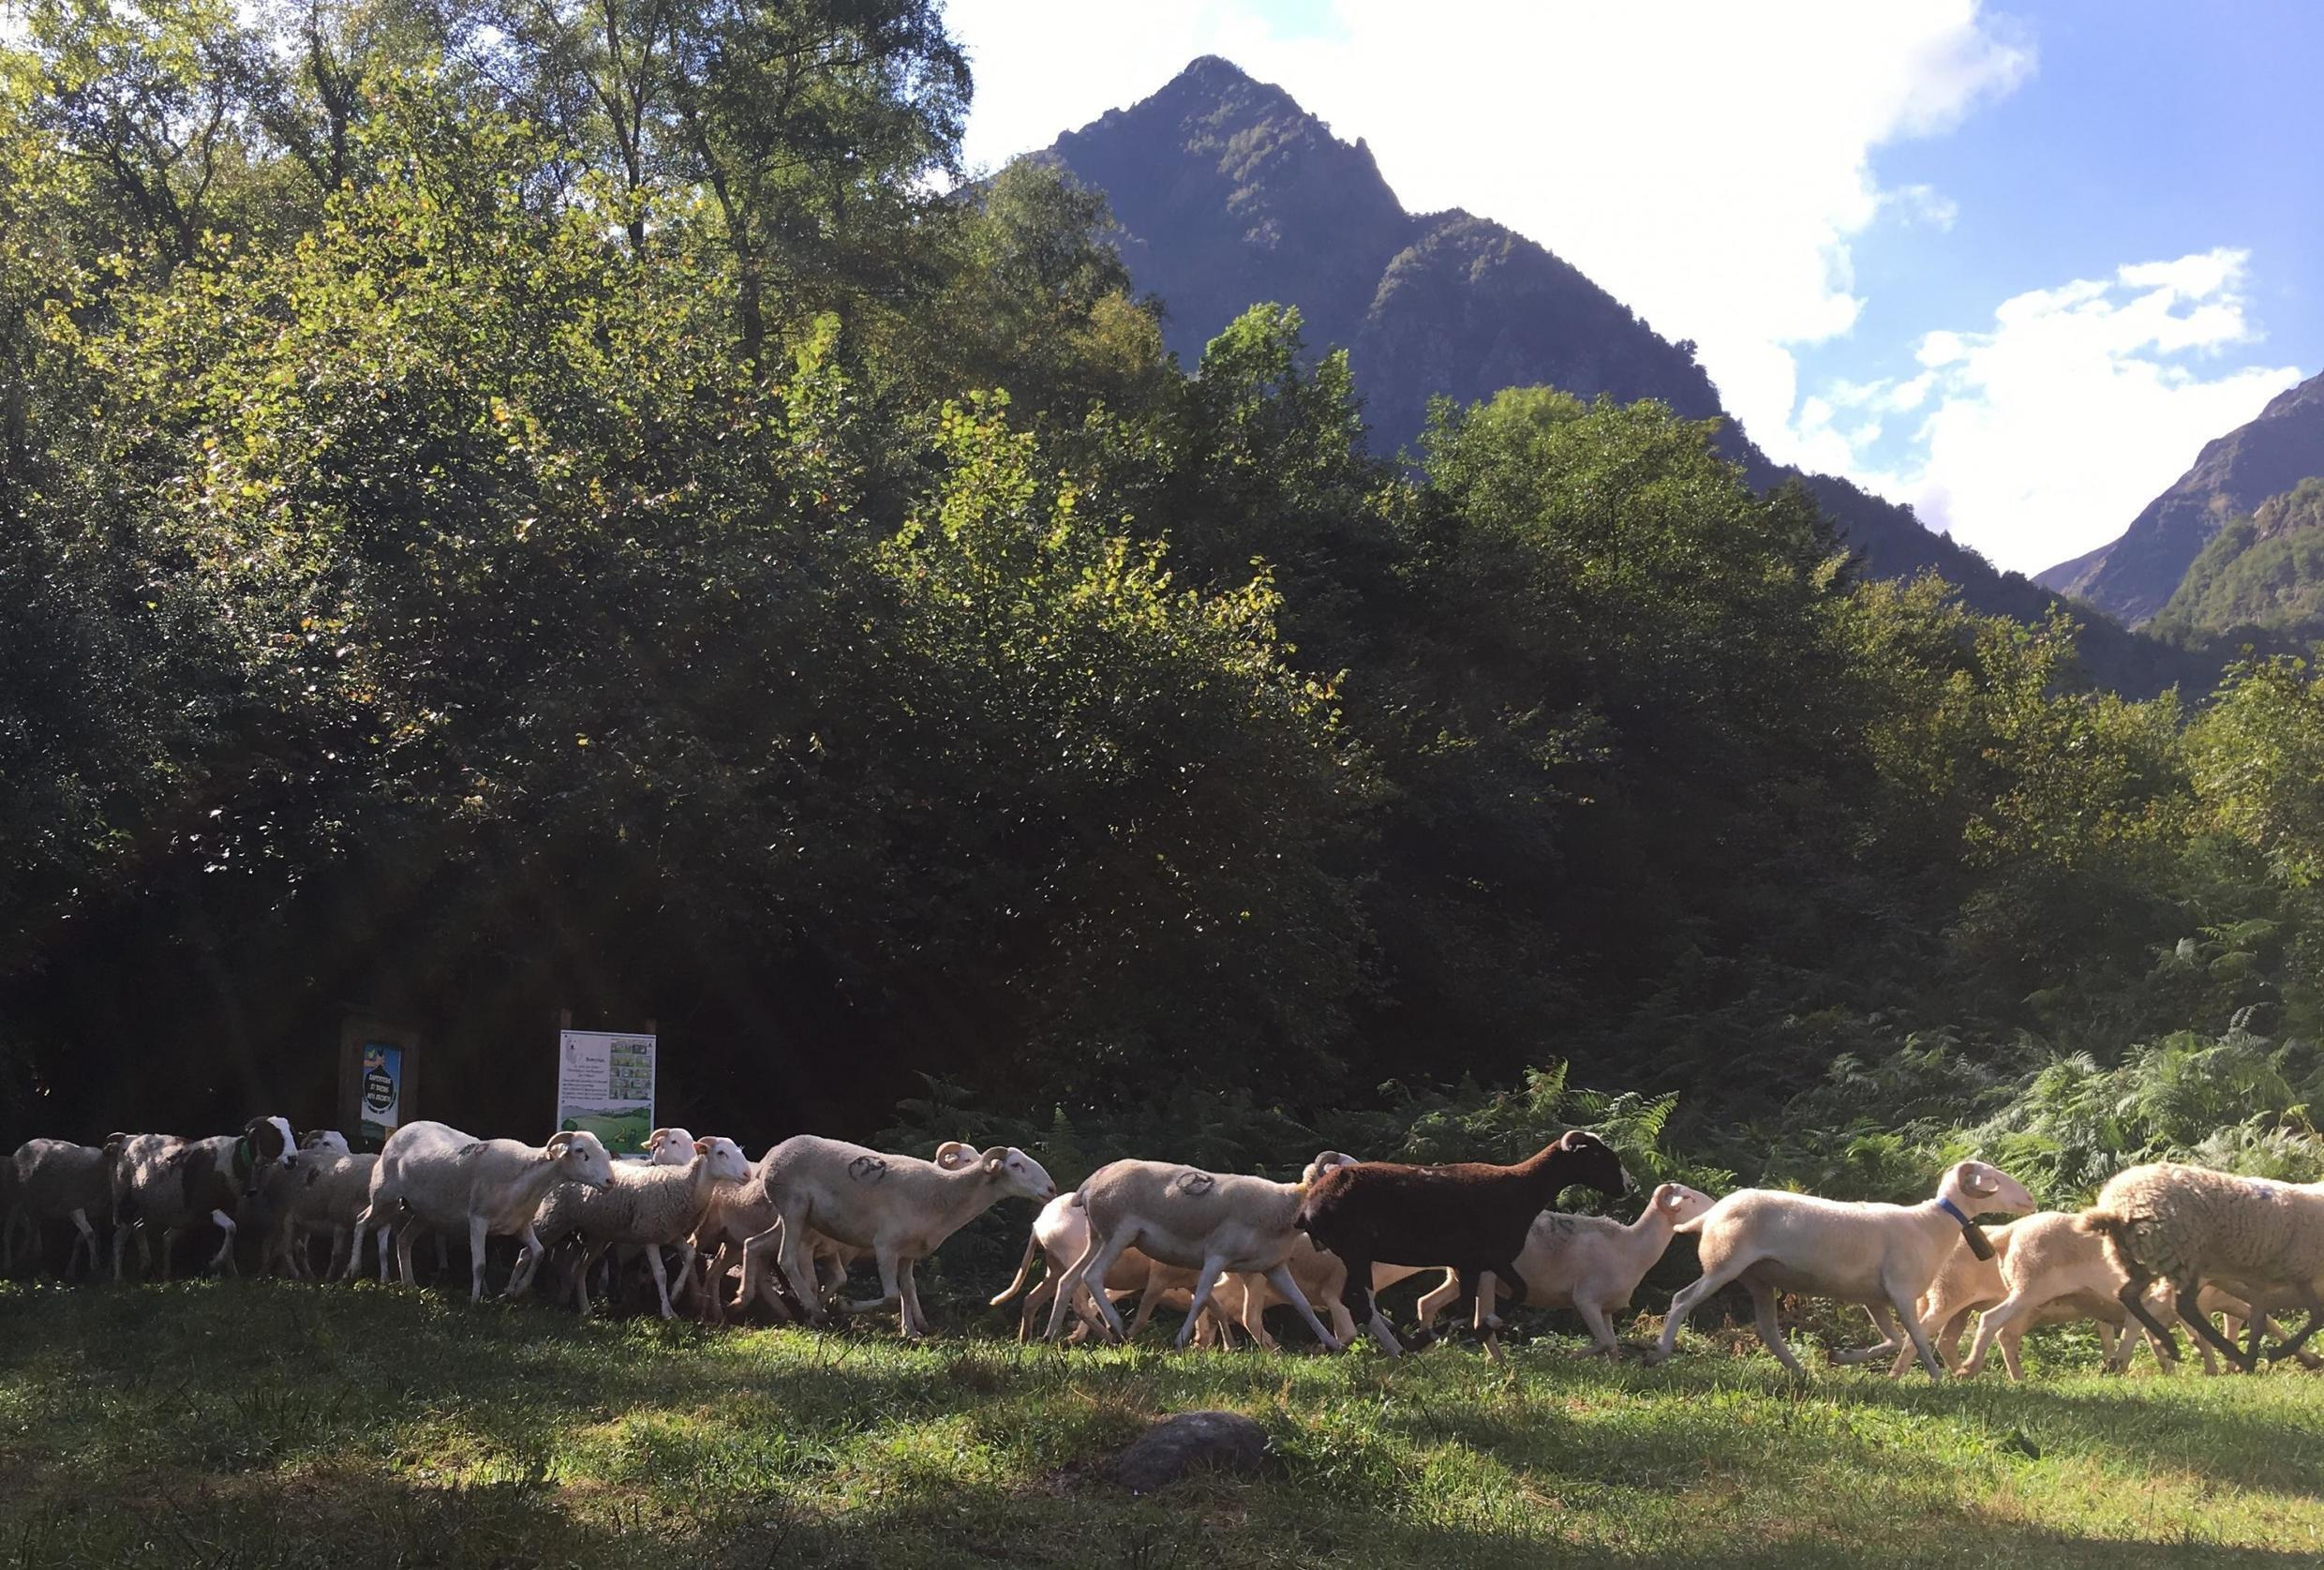 At the end of the transhumance, the summer grazing season, Tarascon sheep are brought down from the pasture above Siguer in the French department of Ariège.